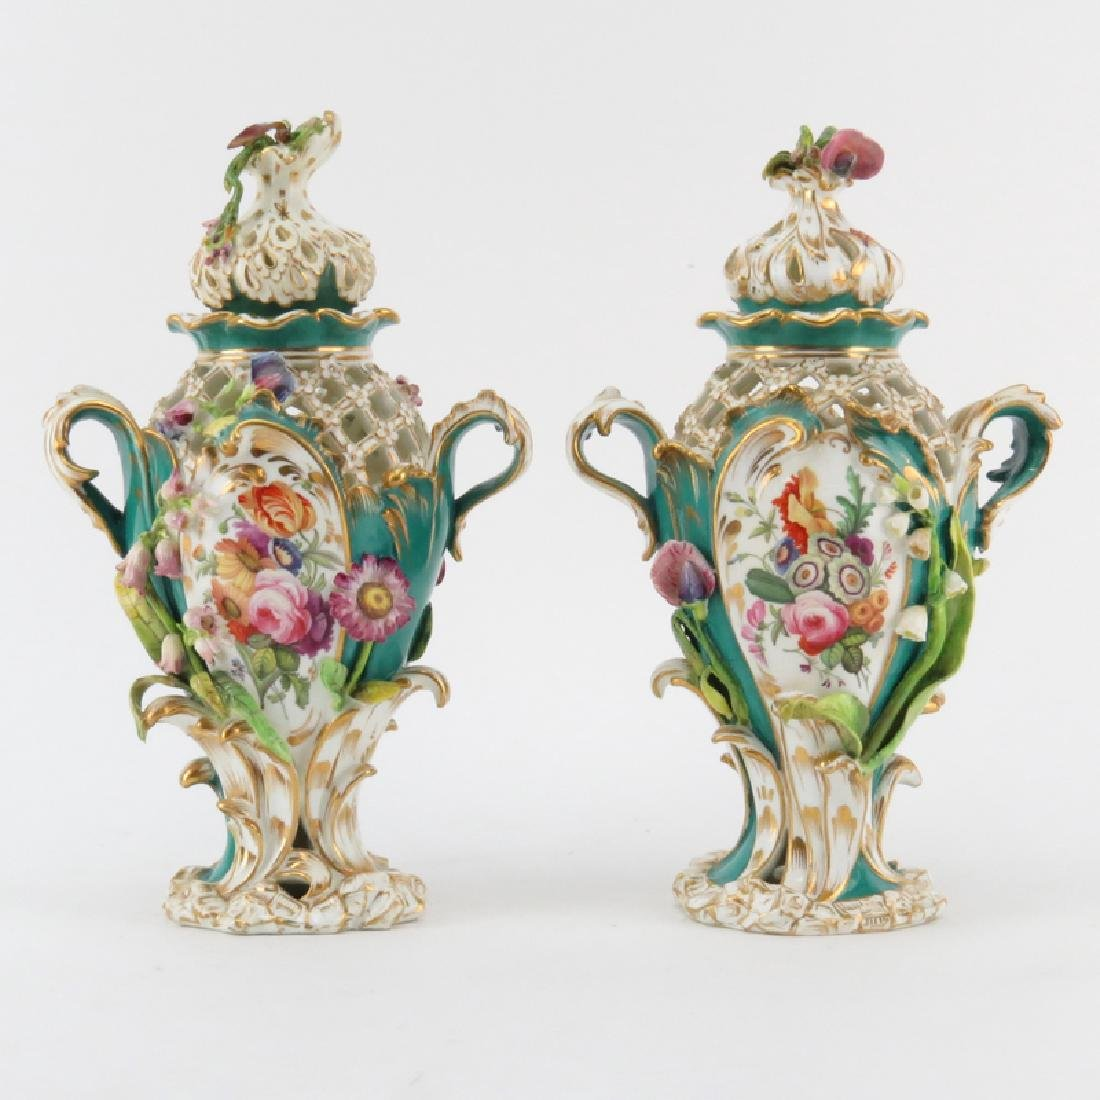 Pair of 18/19th Century English, Possibly Chelsea, Hand